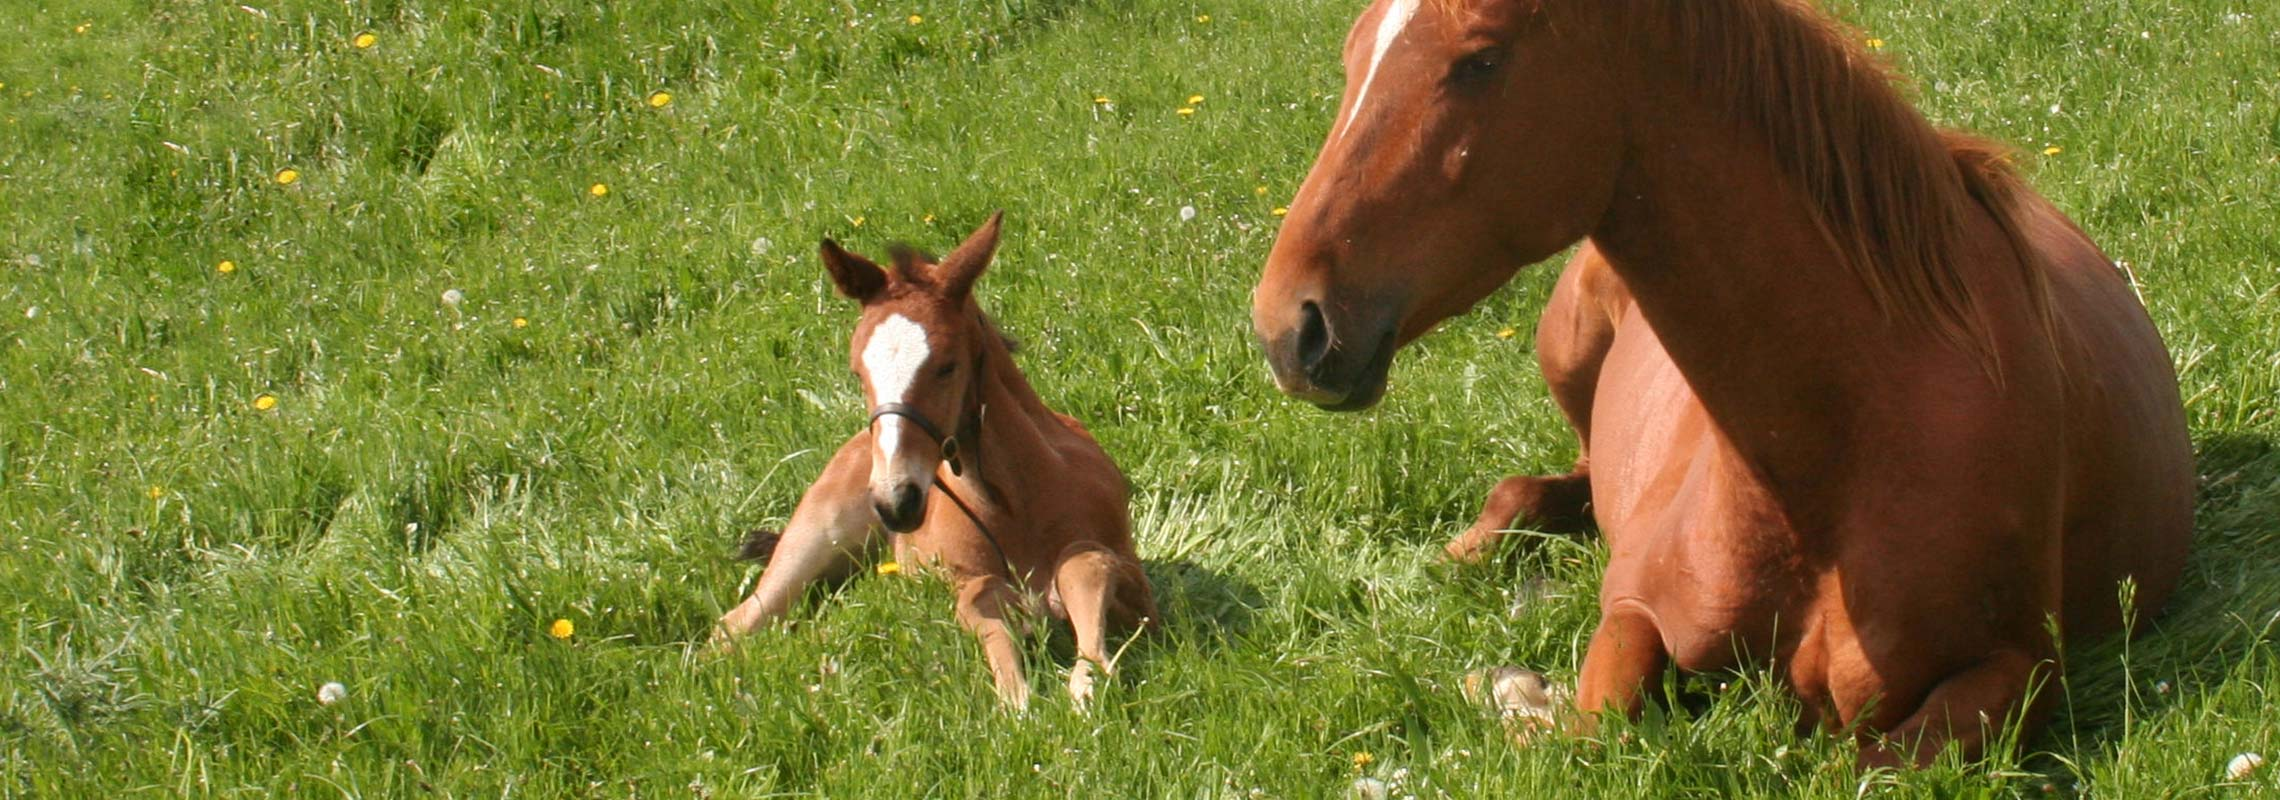 GreenLane Stud - Competition horses breeders - Foal